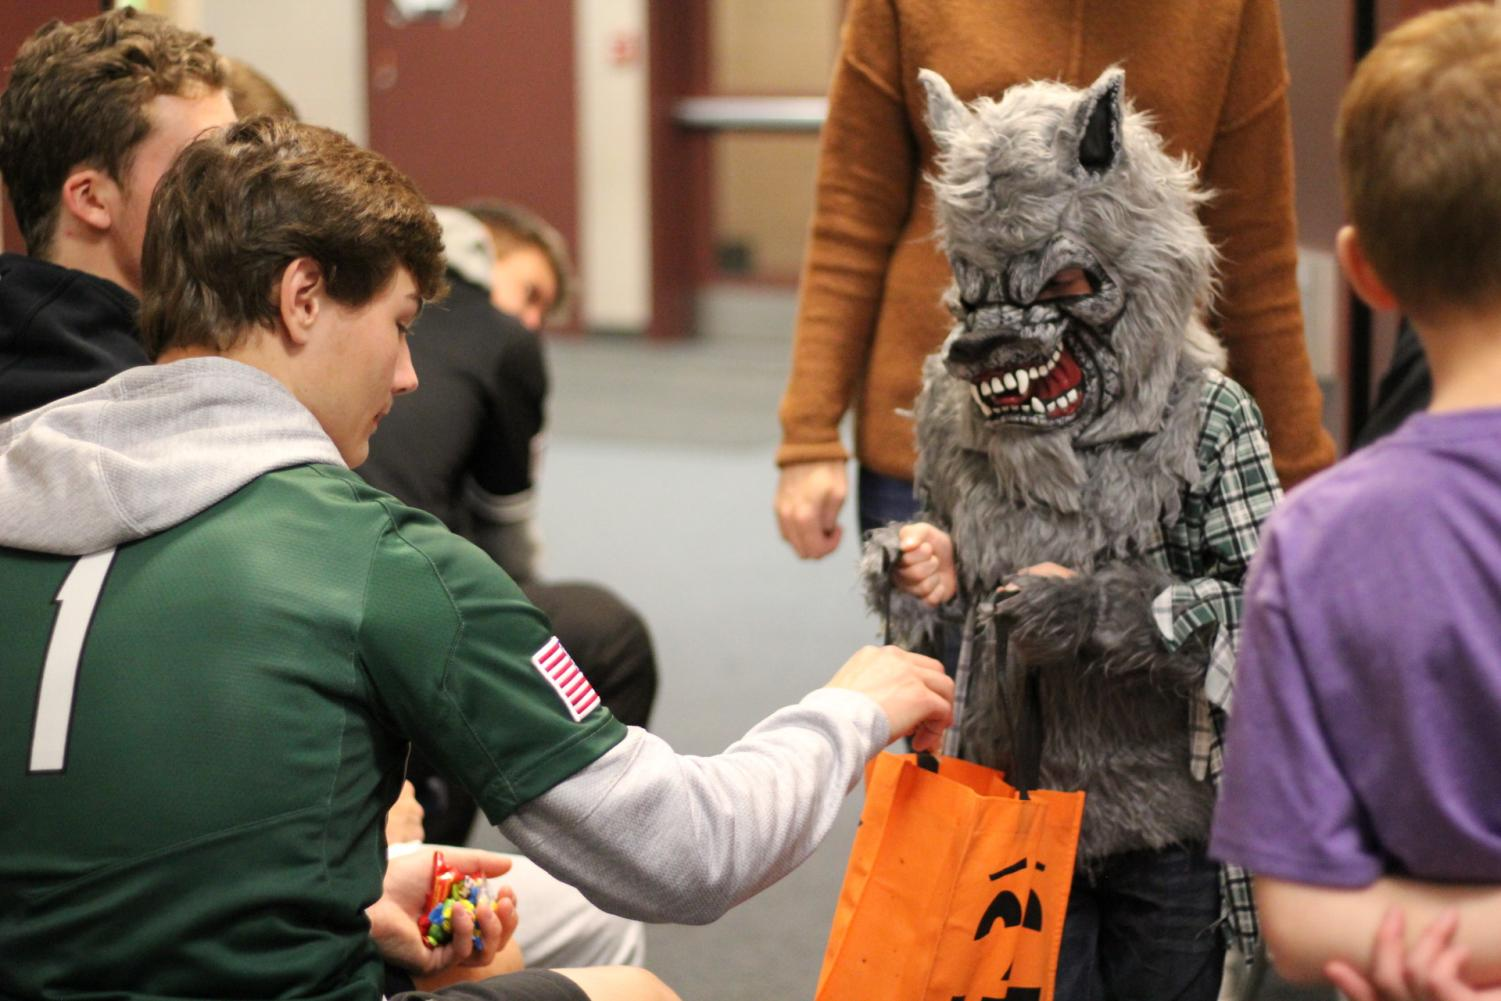 Baseball player, Preston Menicucci helps pass out candy to students.